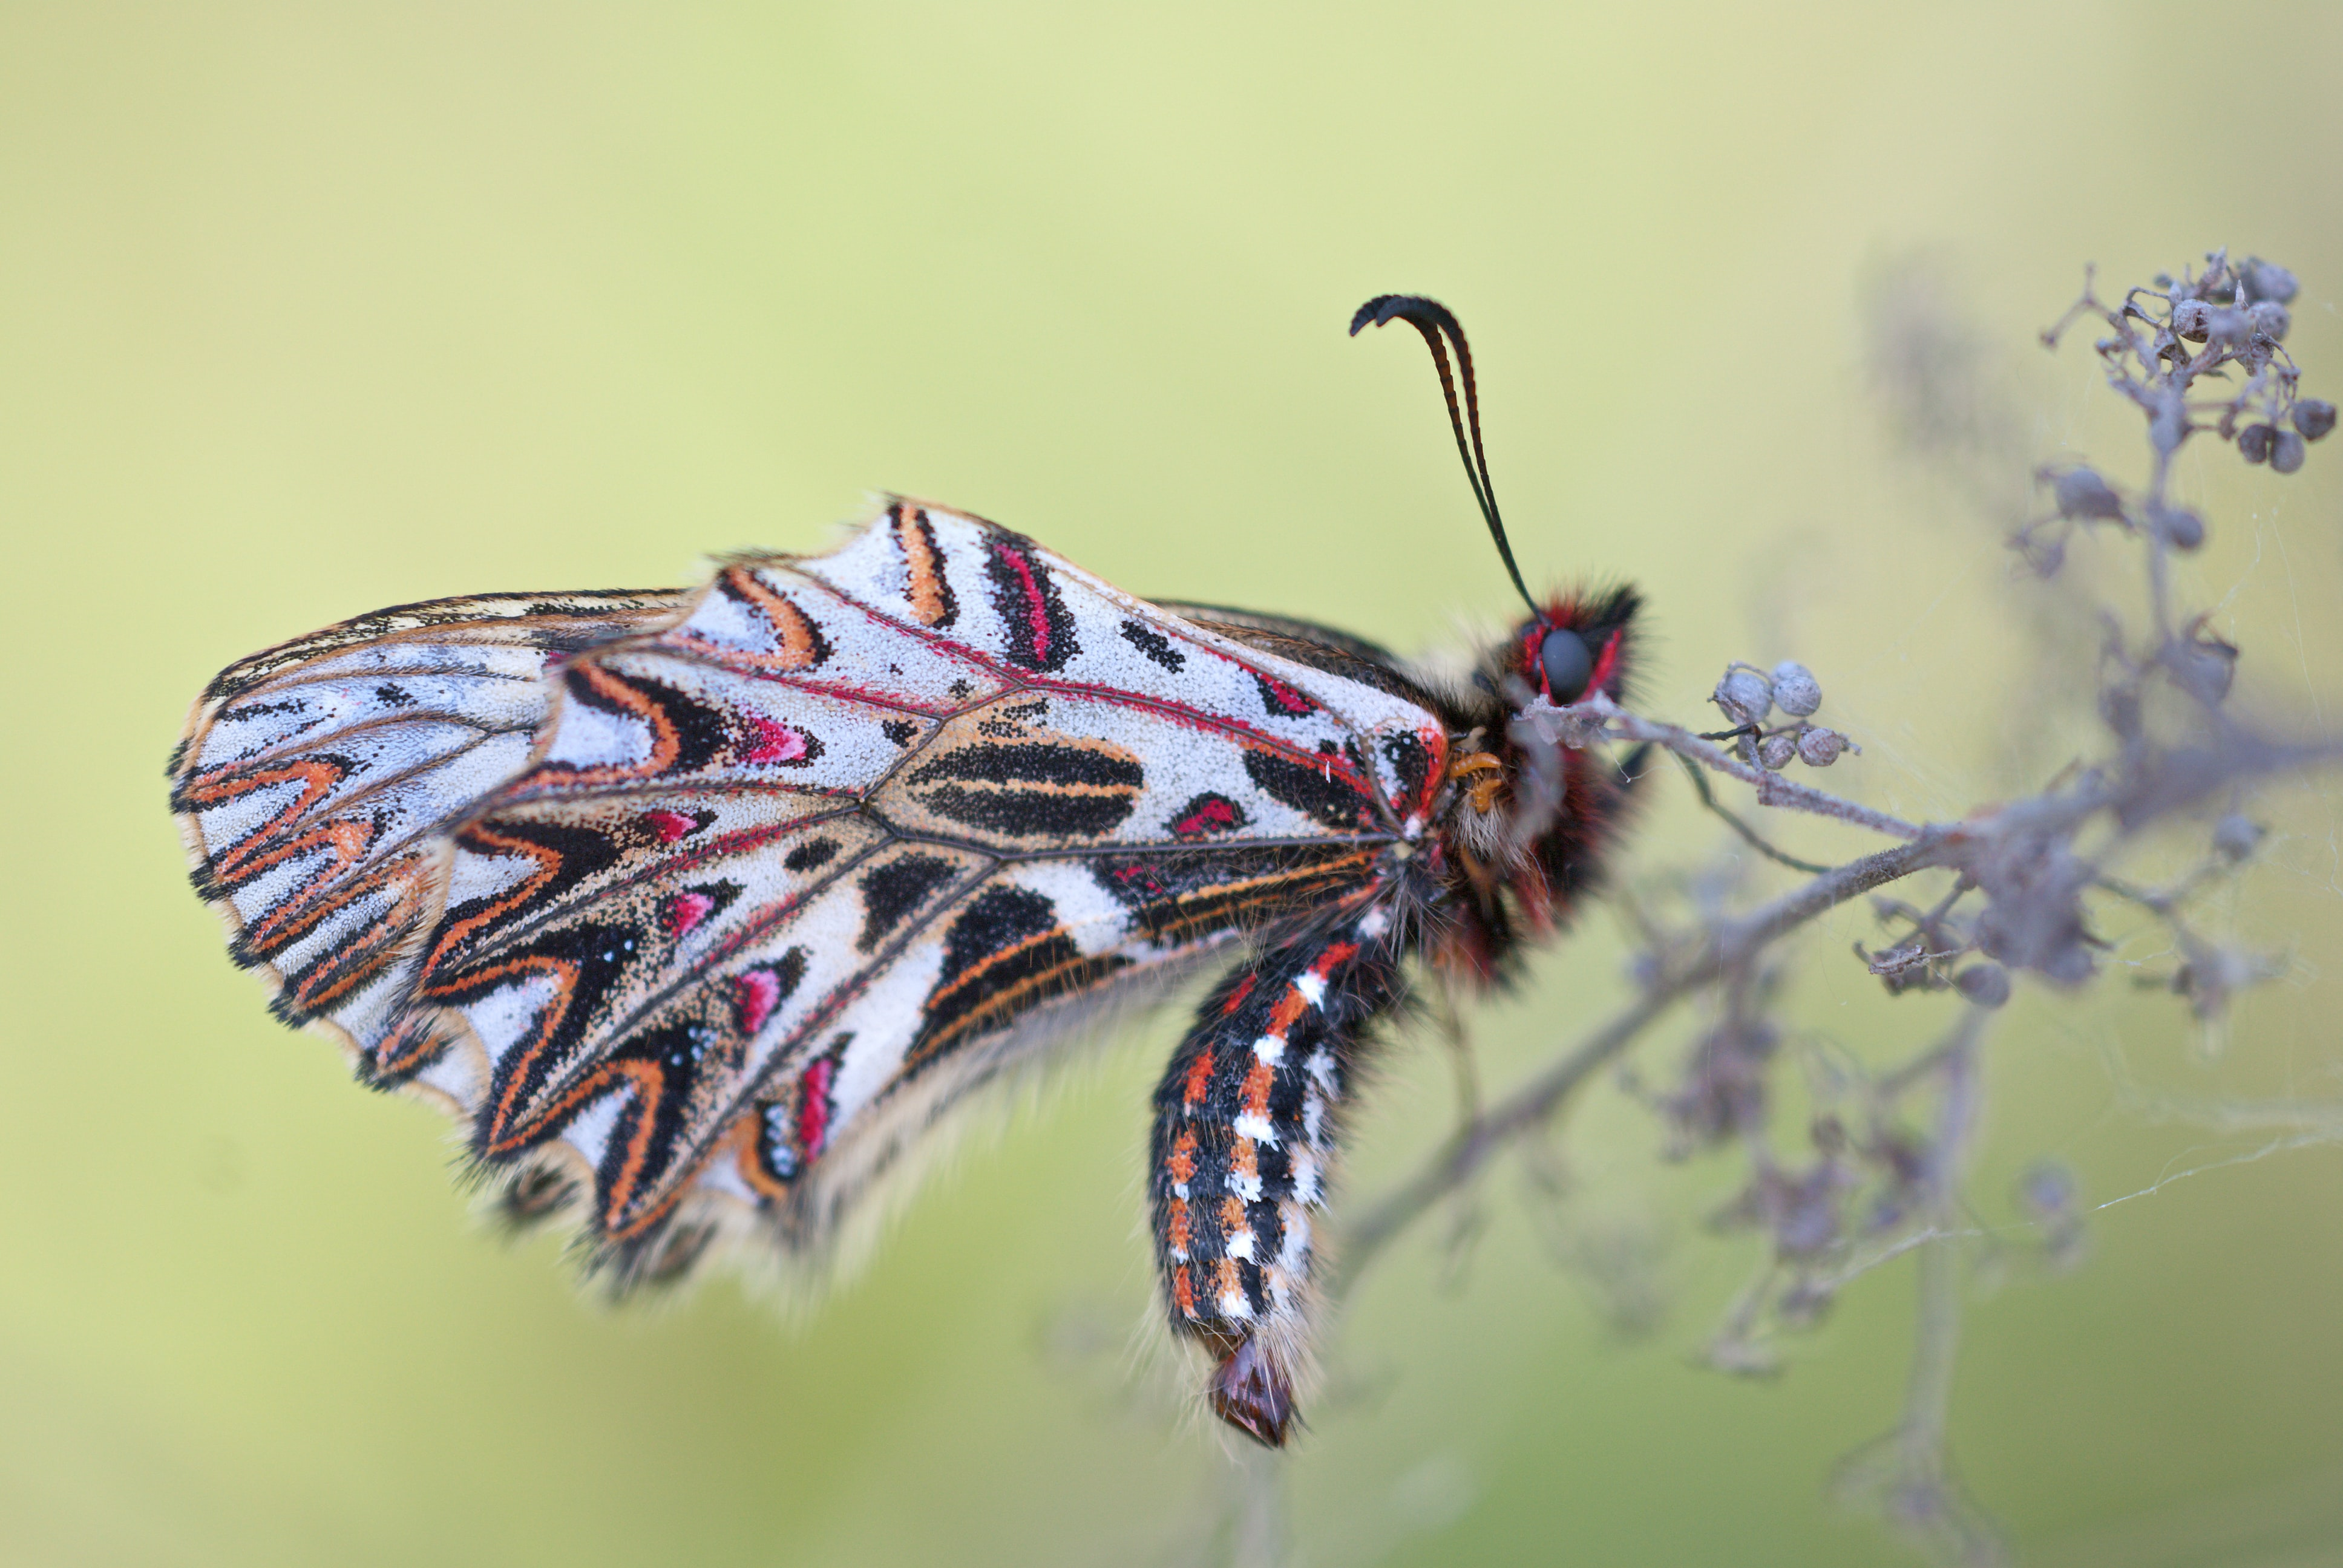 Close-up of a butterfly with beautifully patterned wings